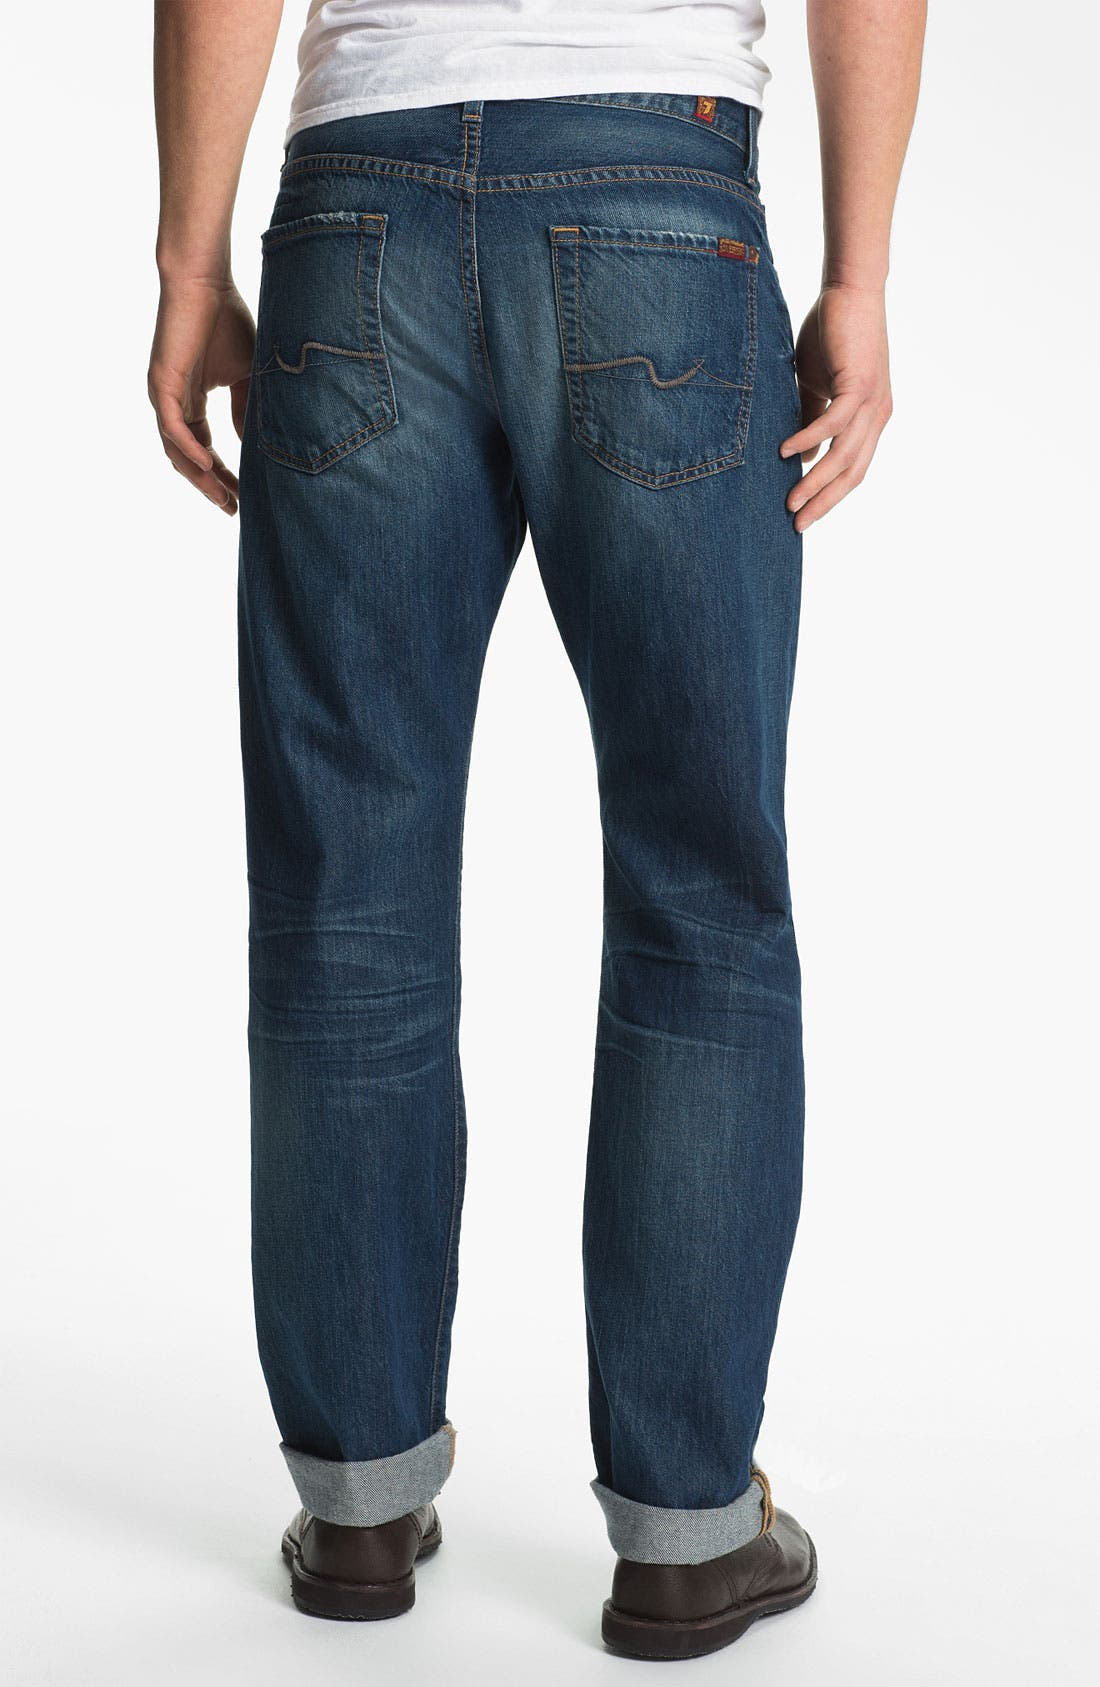 Alternate Image 1 Selected - 7 For All Mankind® 'Carsen' Straight Leg Jeans (Juniper Bay)